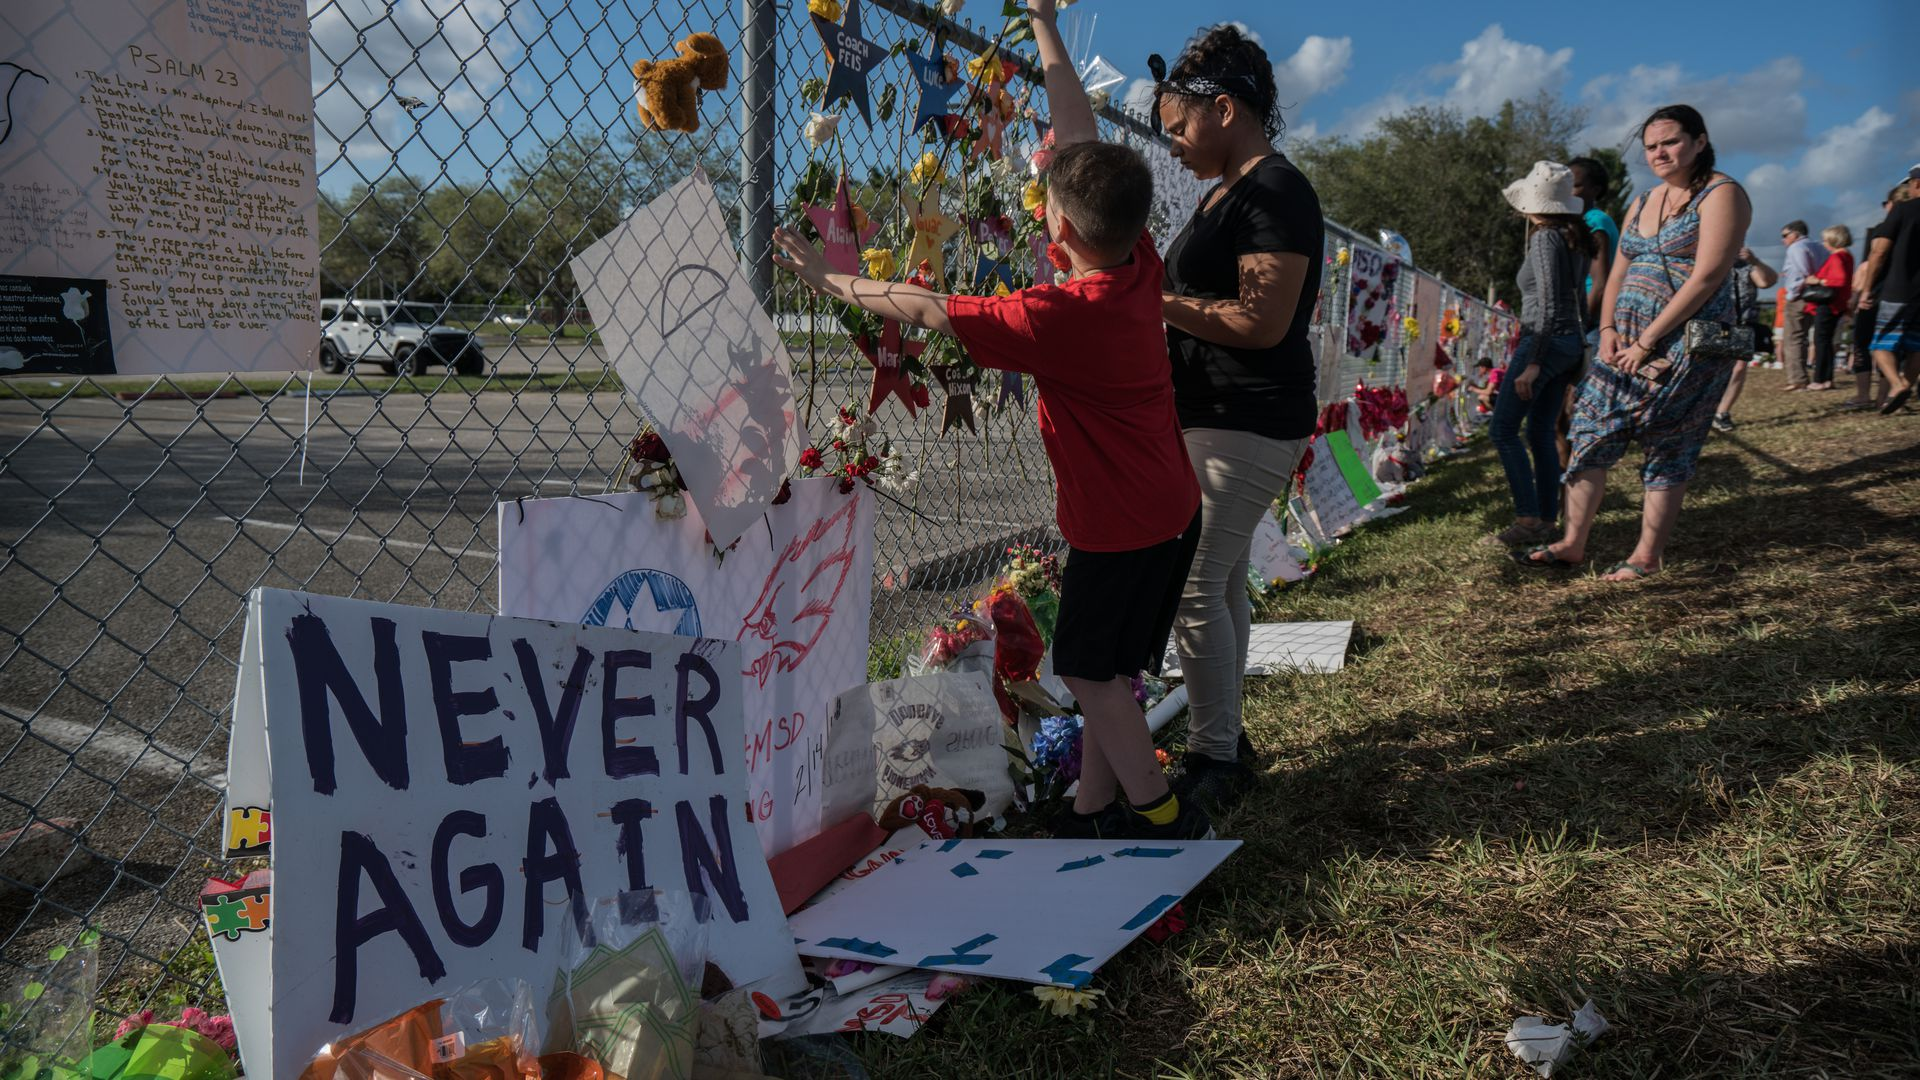 Memorials at Stoneman Douglas High School